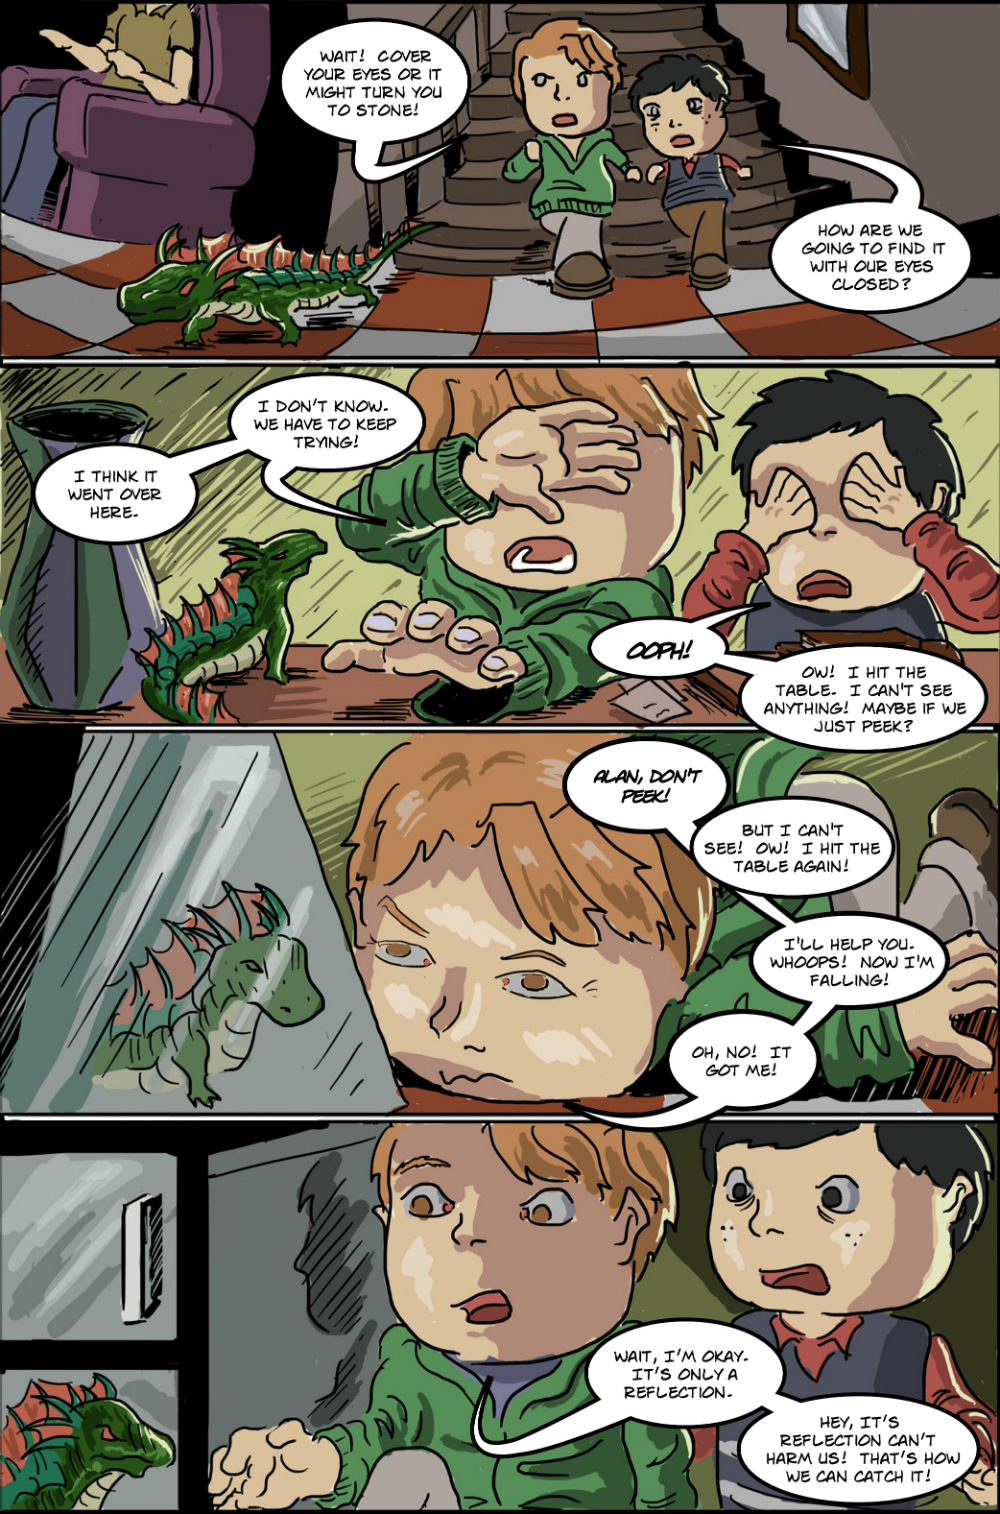 BASILISK IN THE HOUSE page 8 - story 18 in The Book of Lies